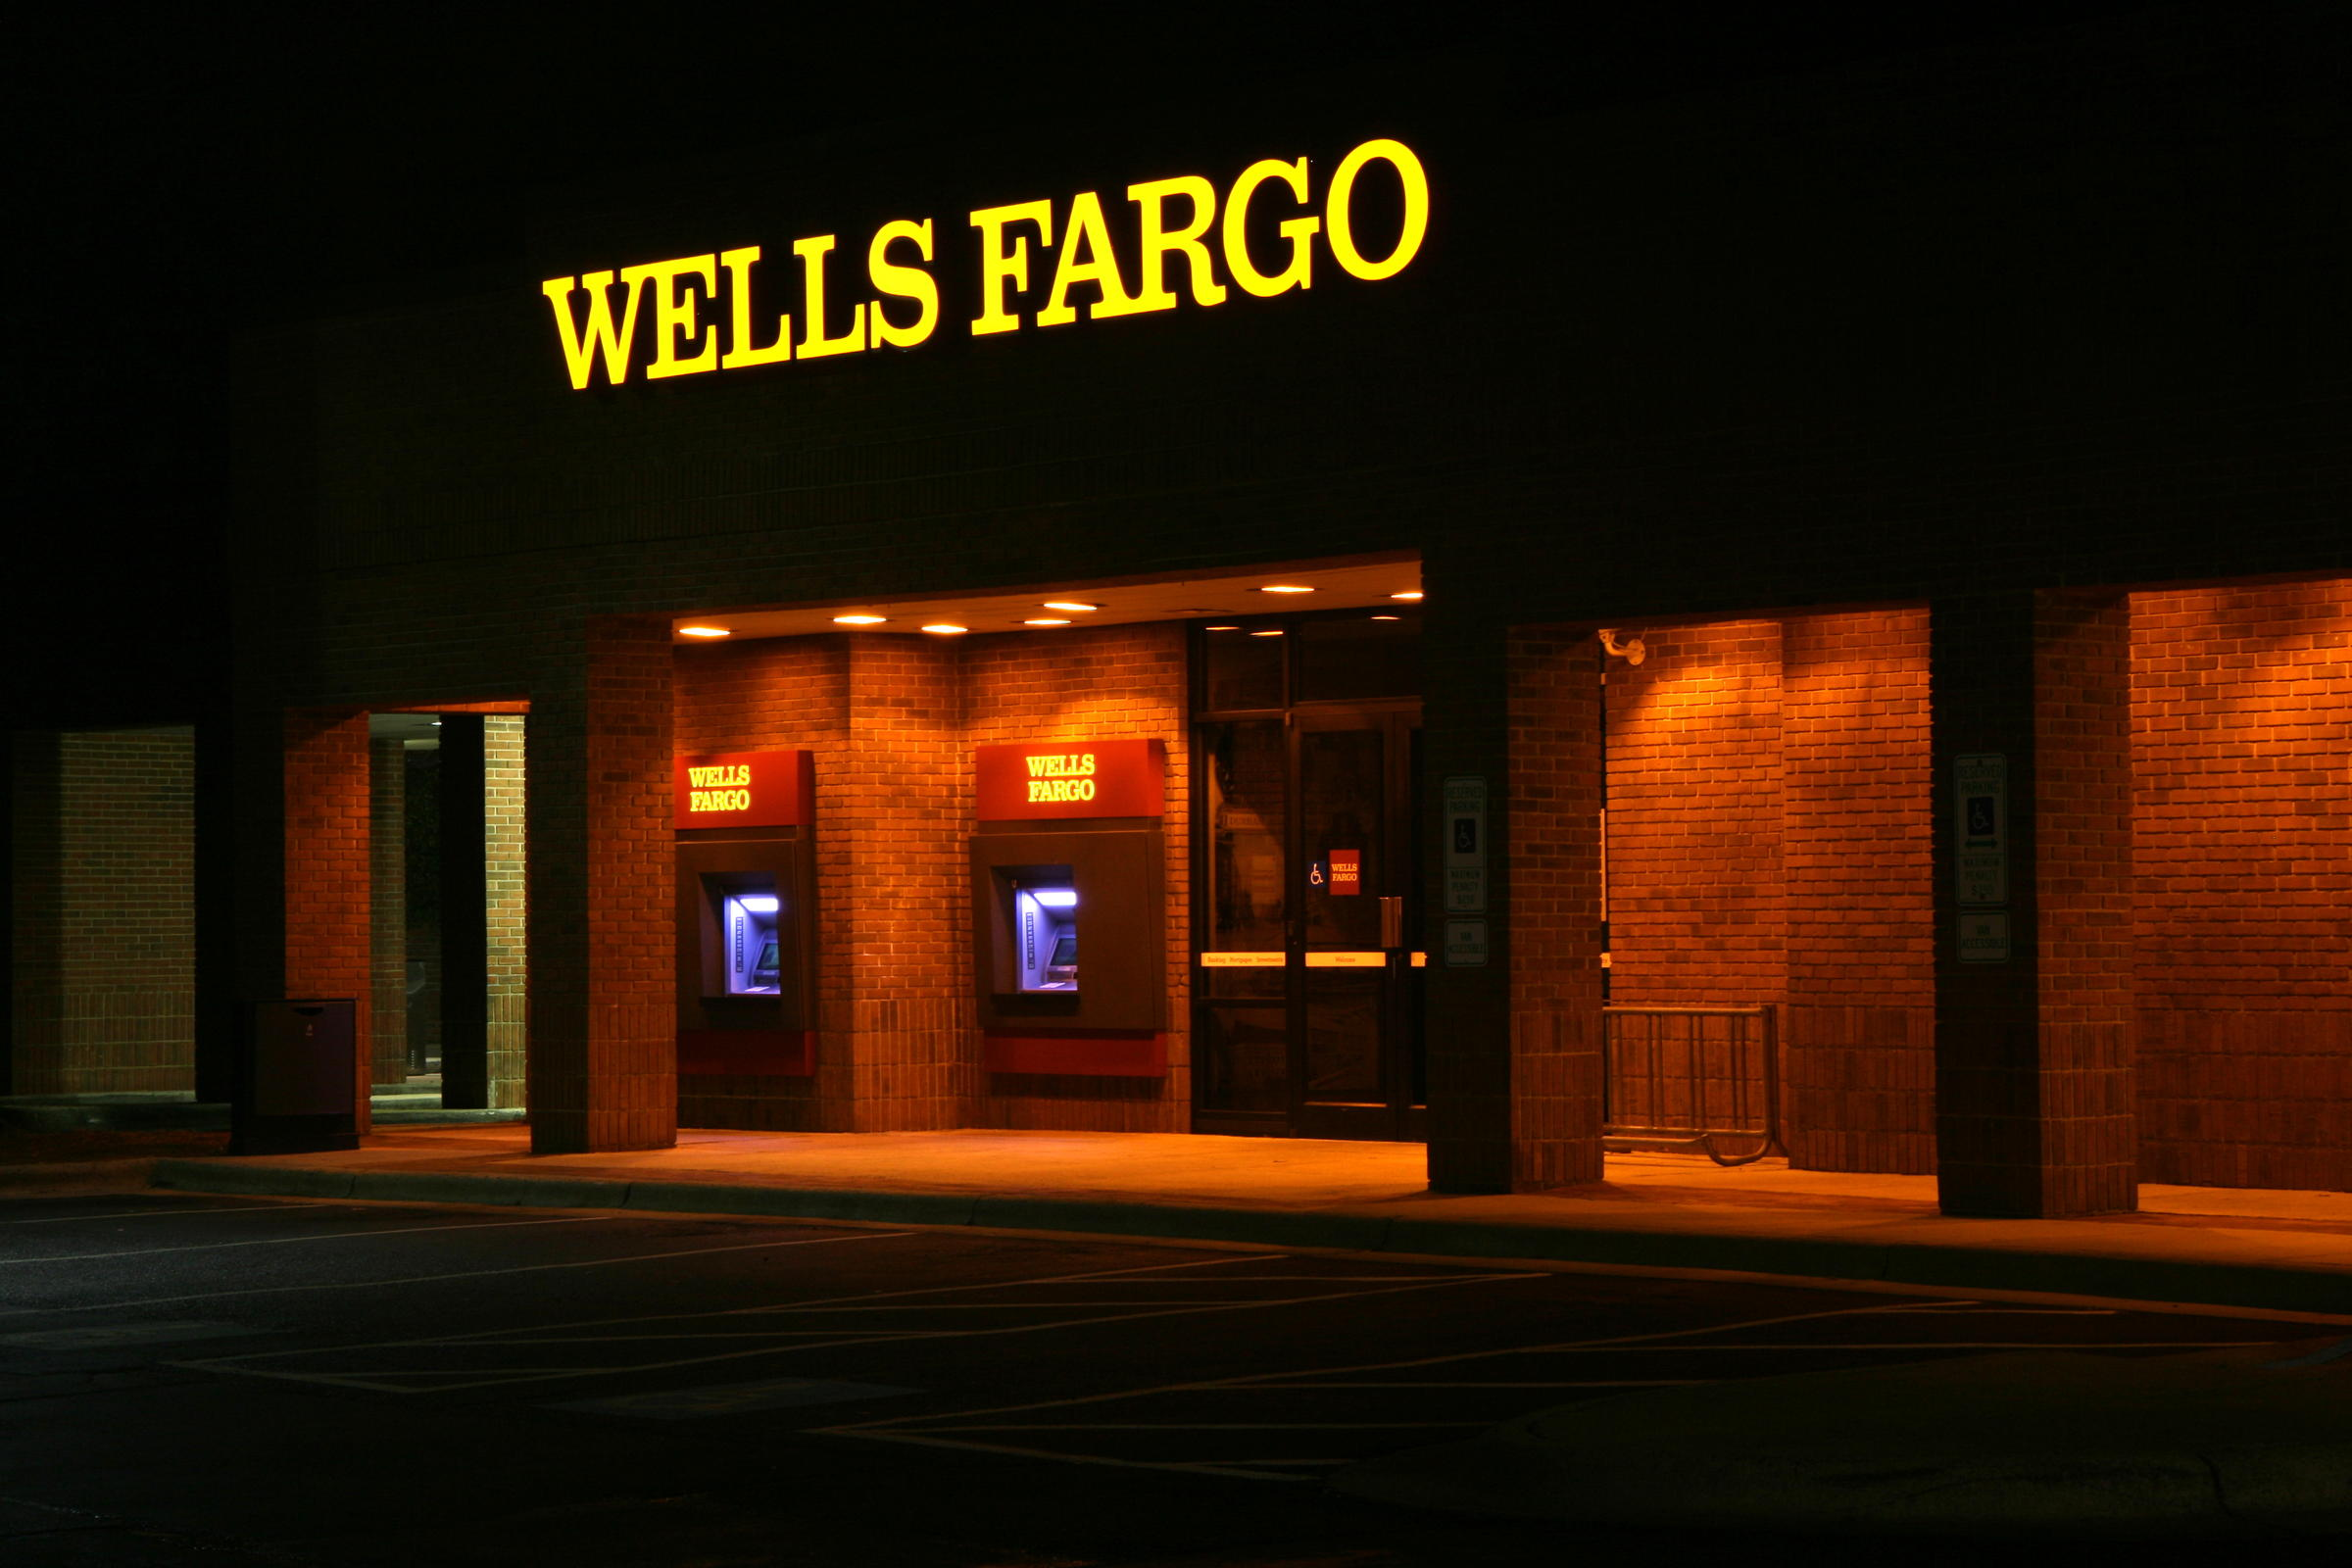 Wells Fargo: The Scandal, The SEC Investigation, And The